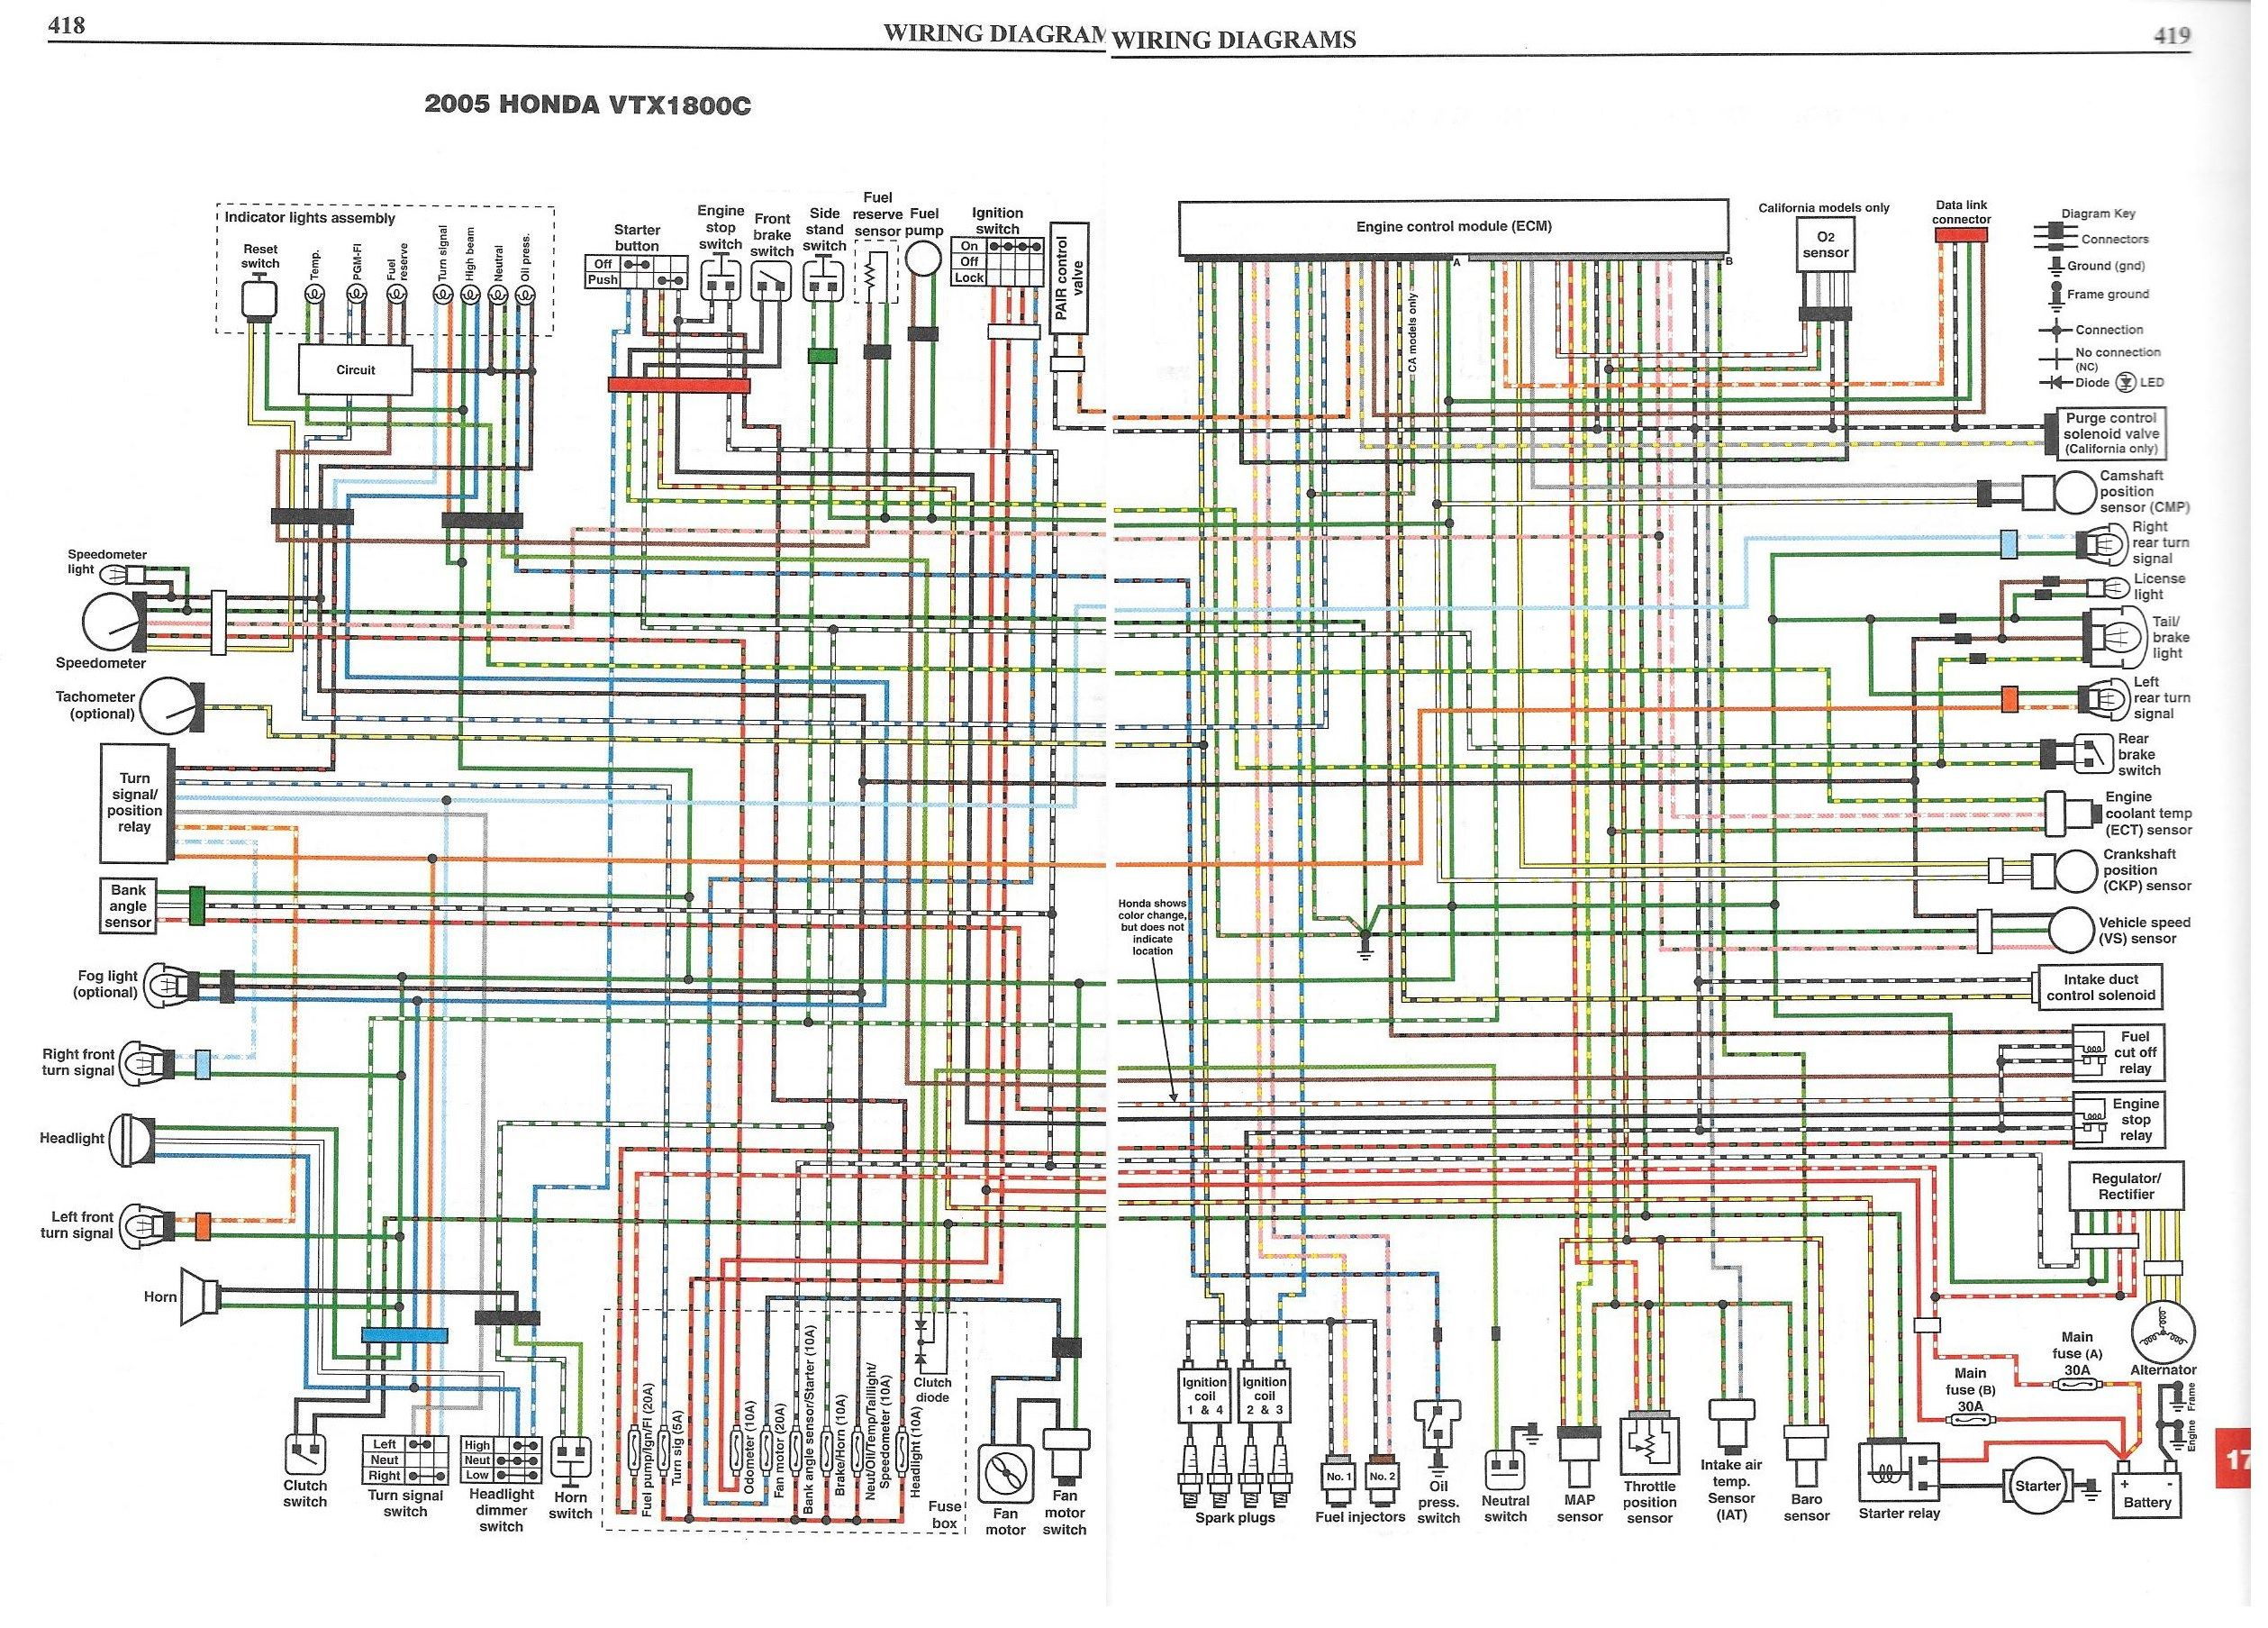 04 international wiring diagram vtx1300c wiring diagram throughout vtx 1300 diagram  electrical  wiring diagram throughout vtx 1300